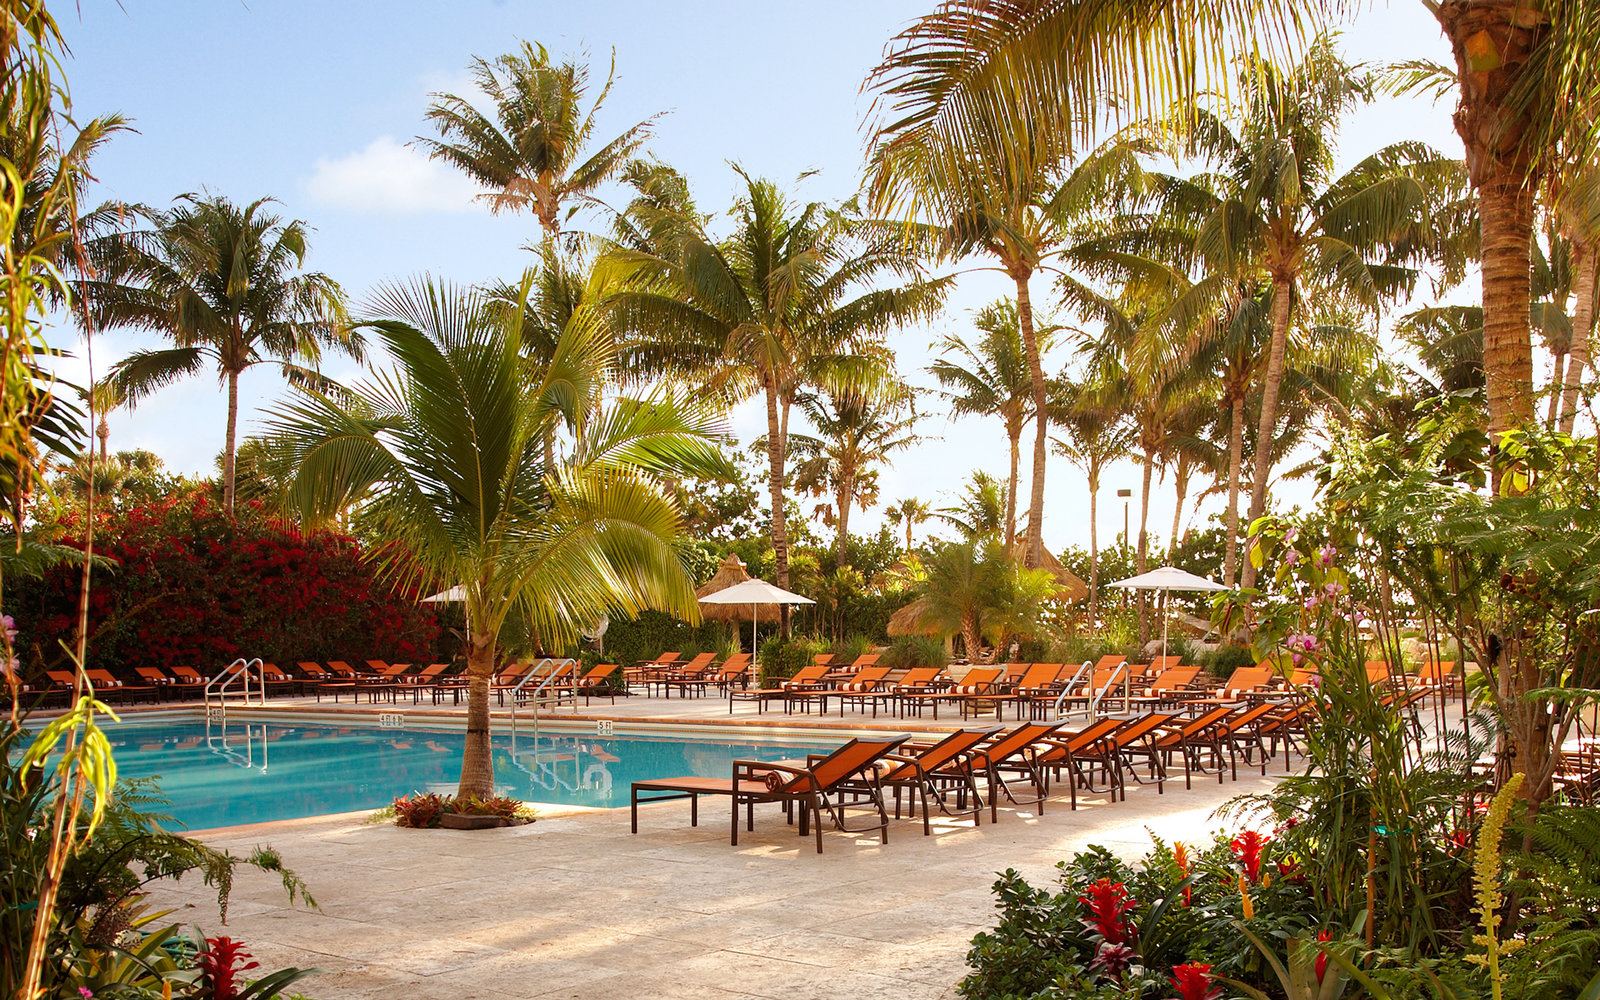 The Palms Hotel & Spa, Miami Beach, Florida